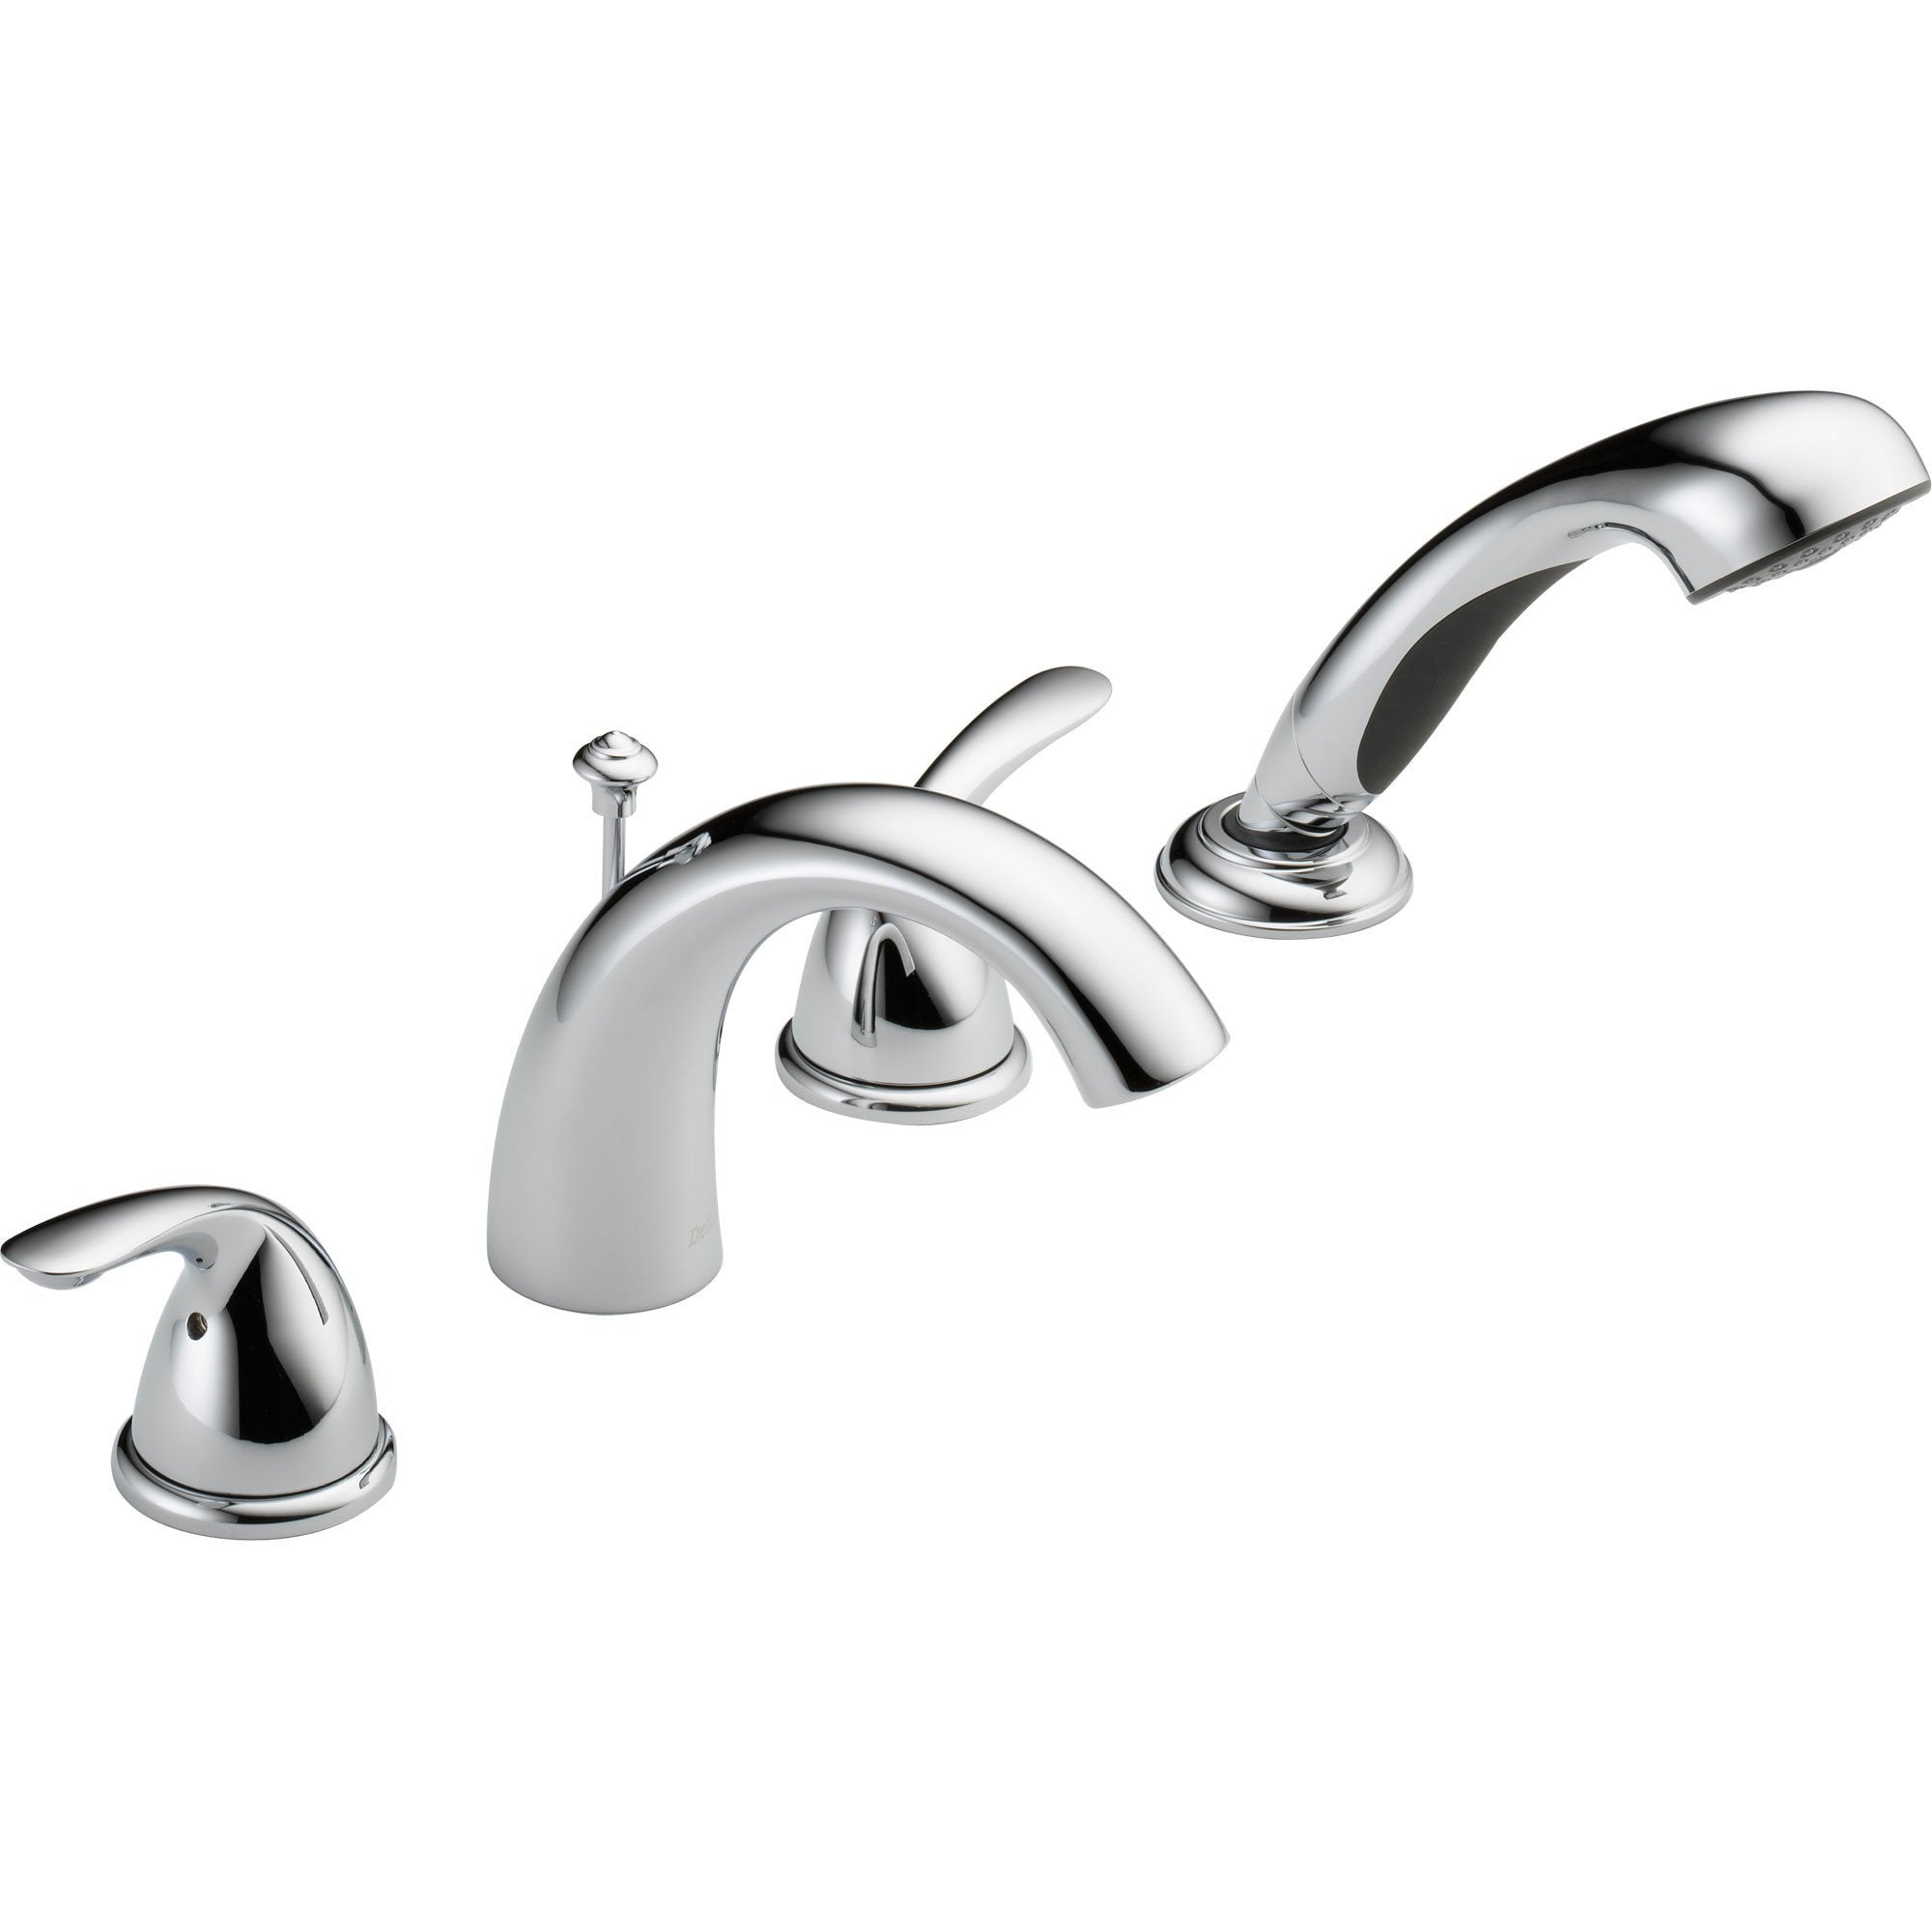 Delta Classic Chrome Roman Tub Filler Faucet with Hand Shower and Valve D857V